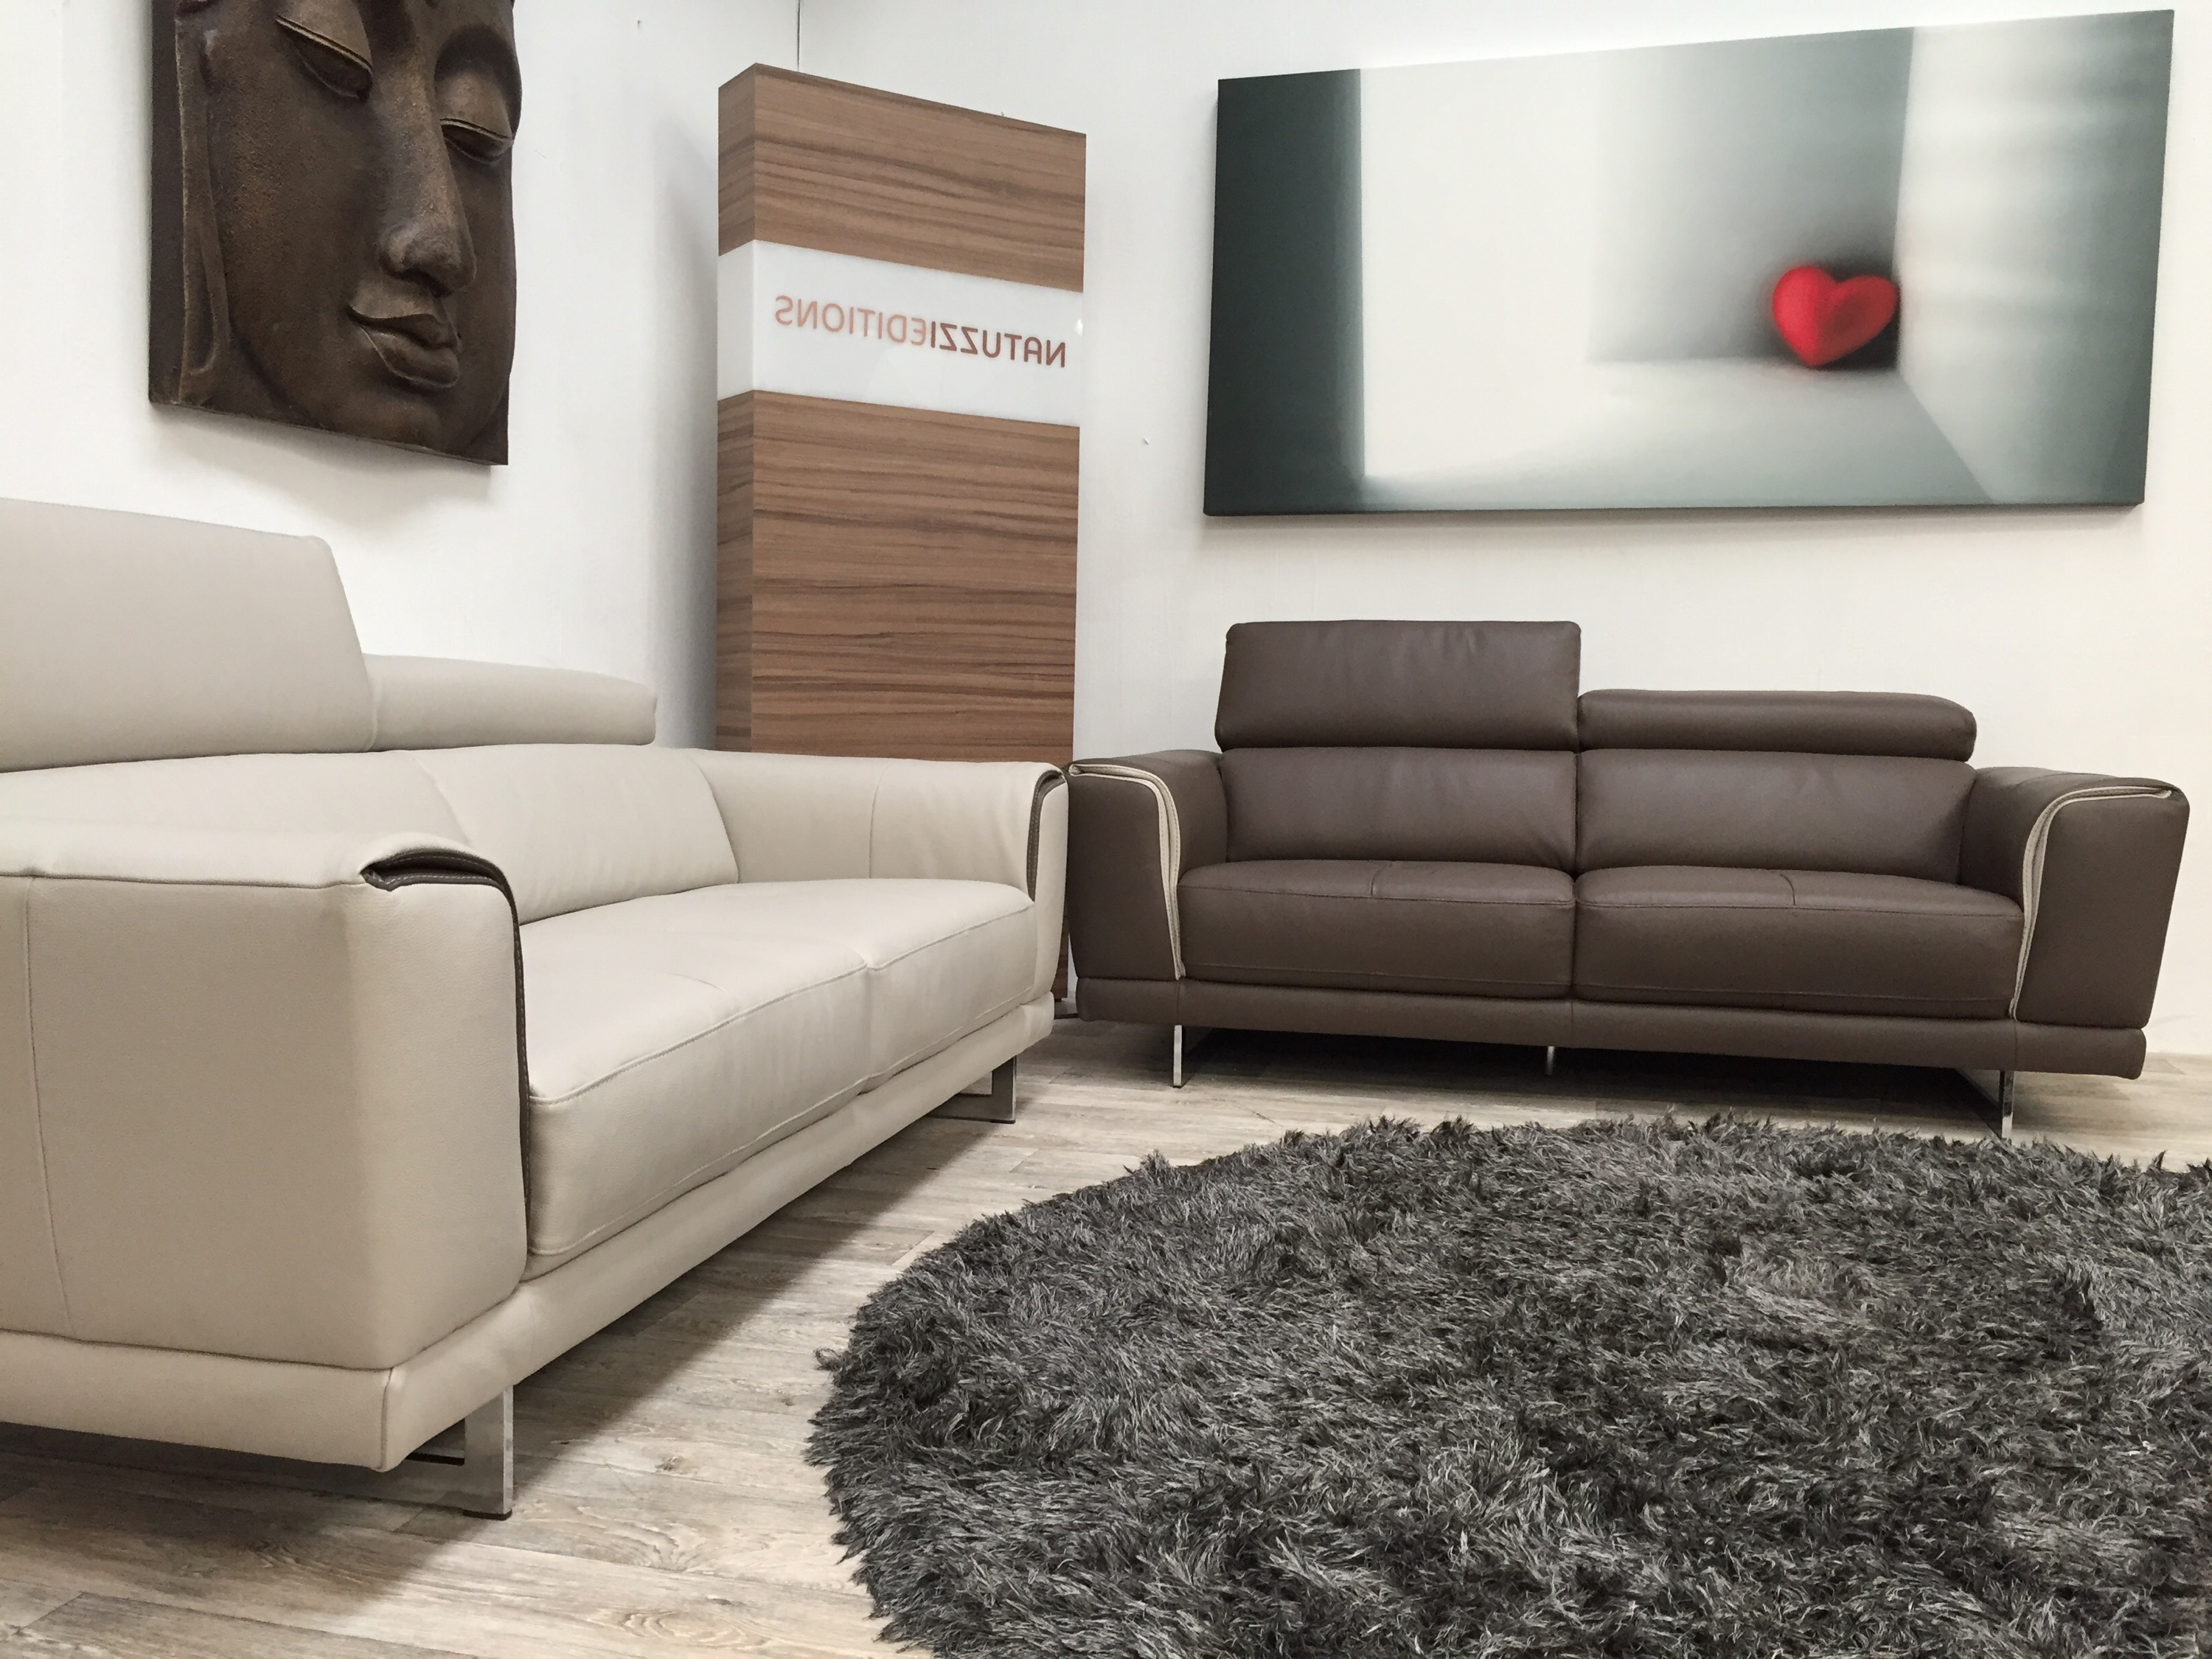 Newest Voted Number One Sofa And Furniture Store In The Manchester Area Within Manchester Sofas (View 12 of 20)